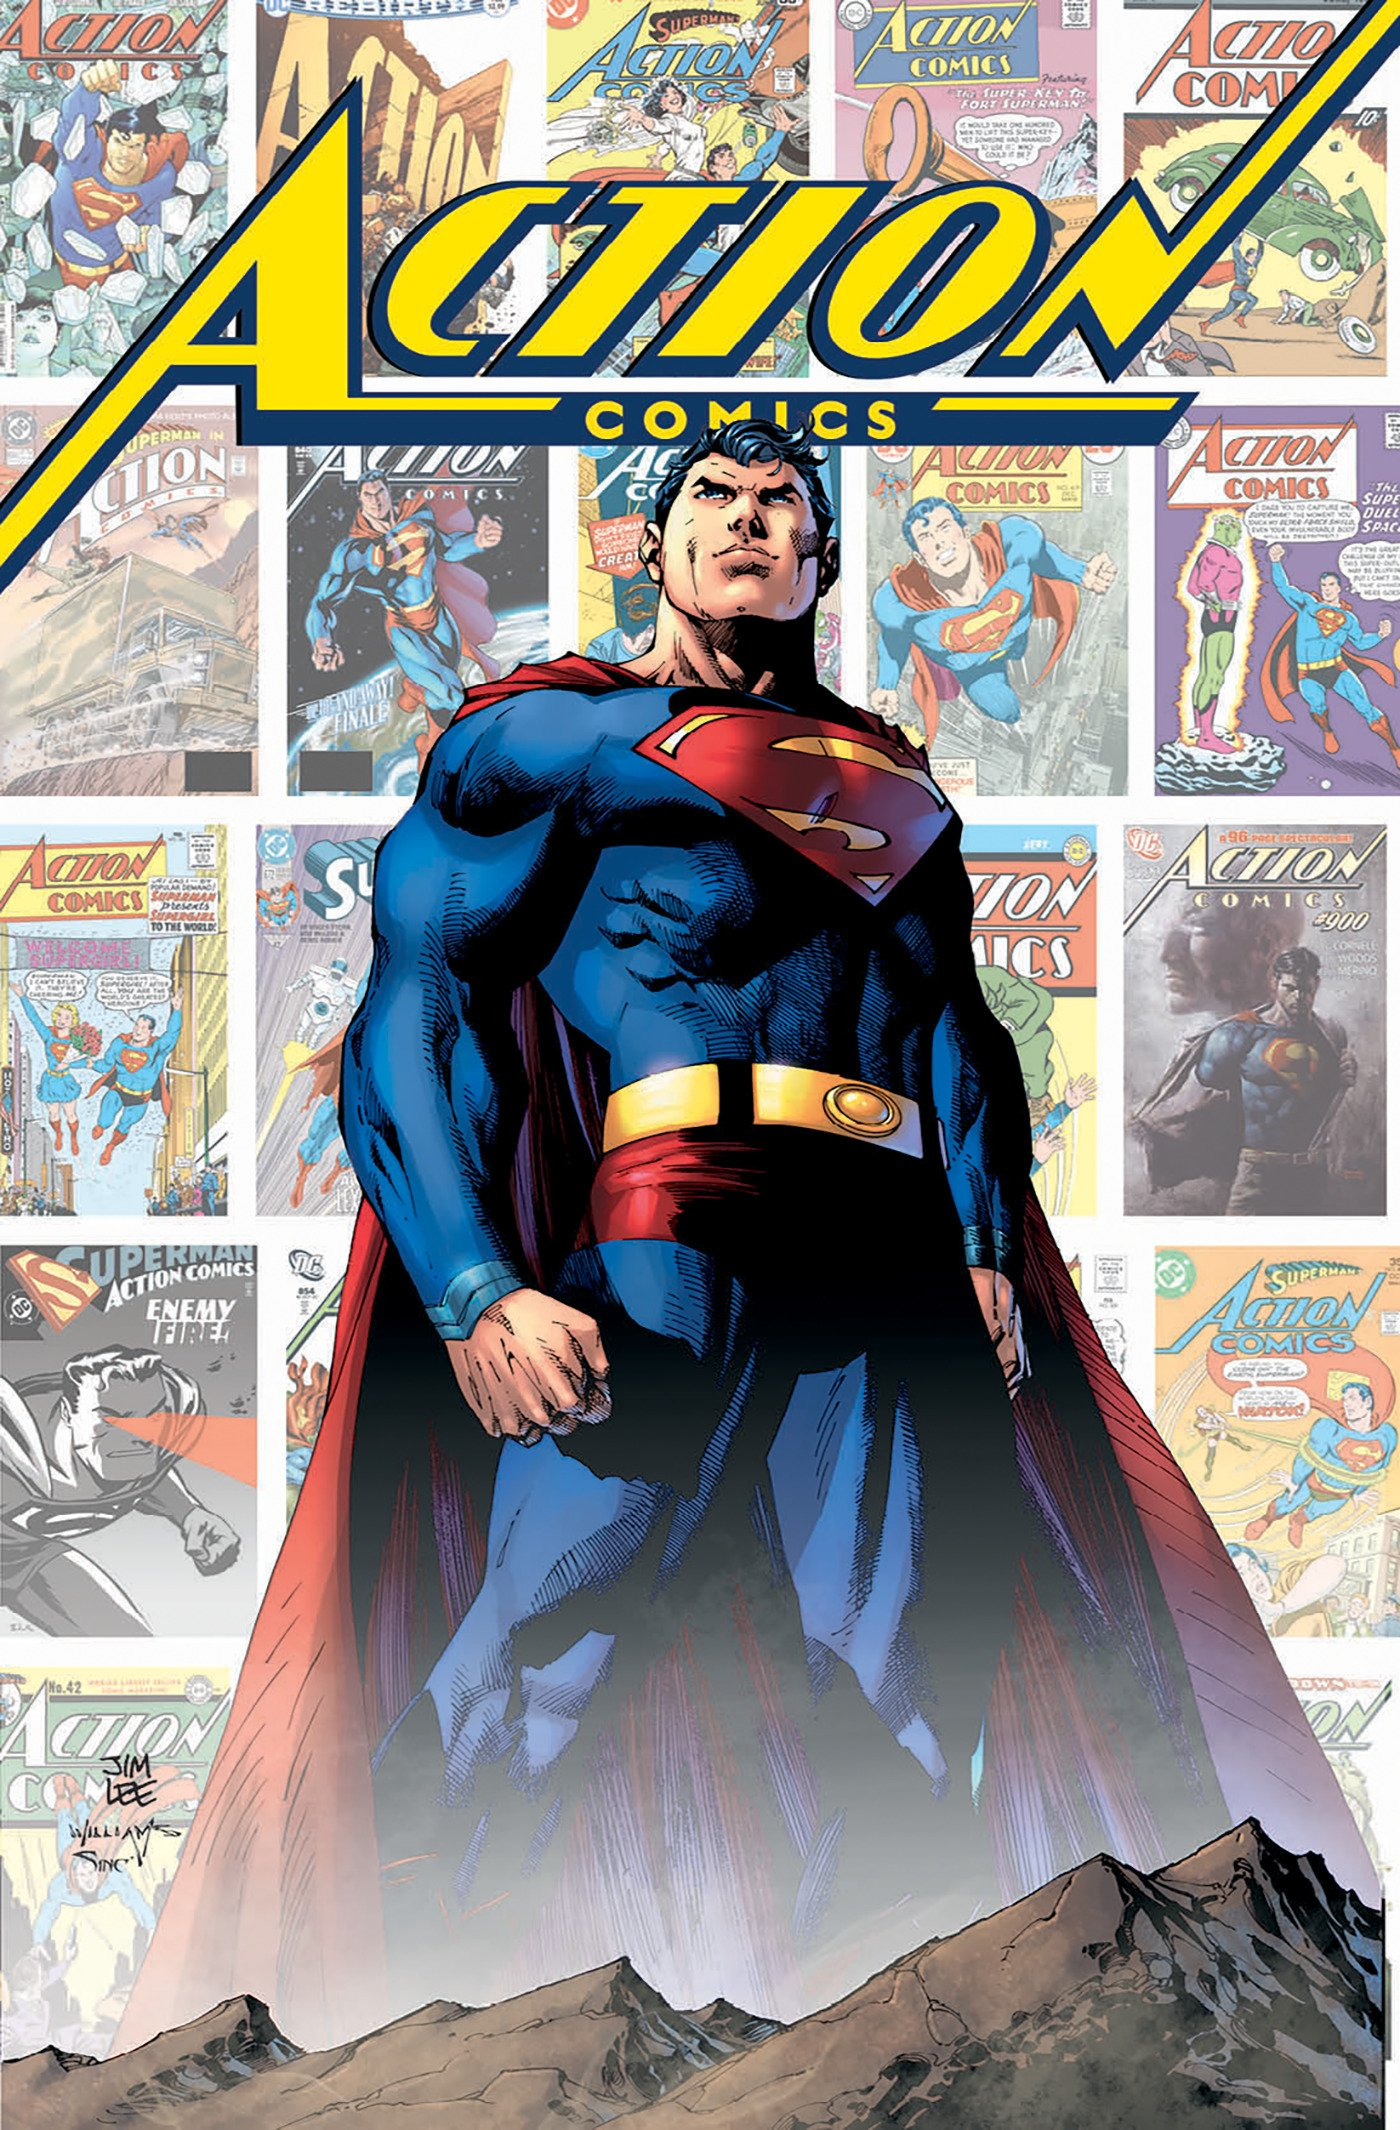 Image result for action comics 1000